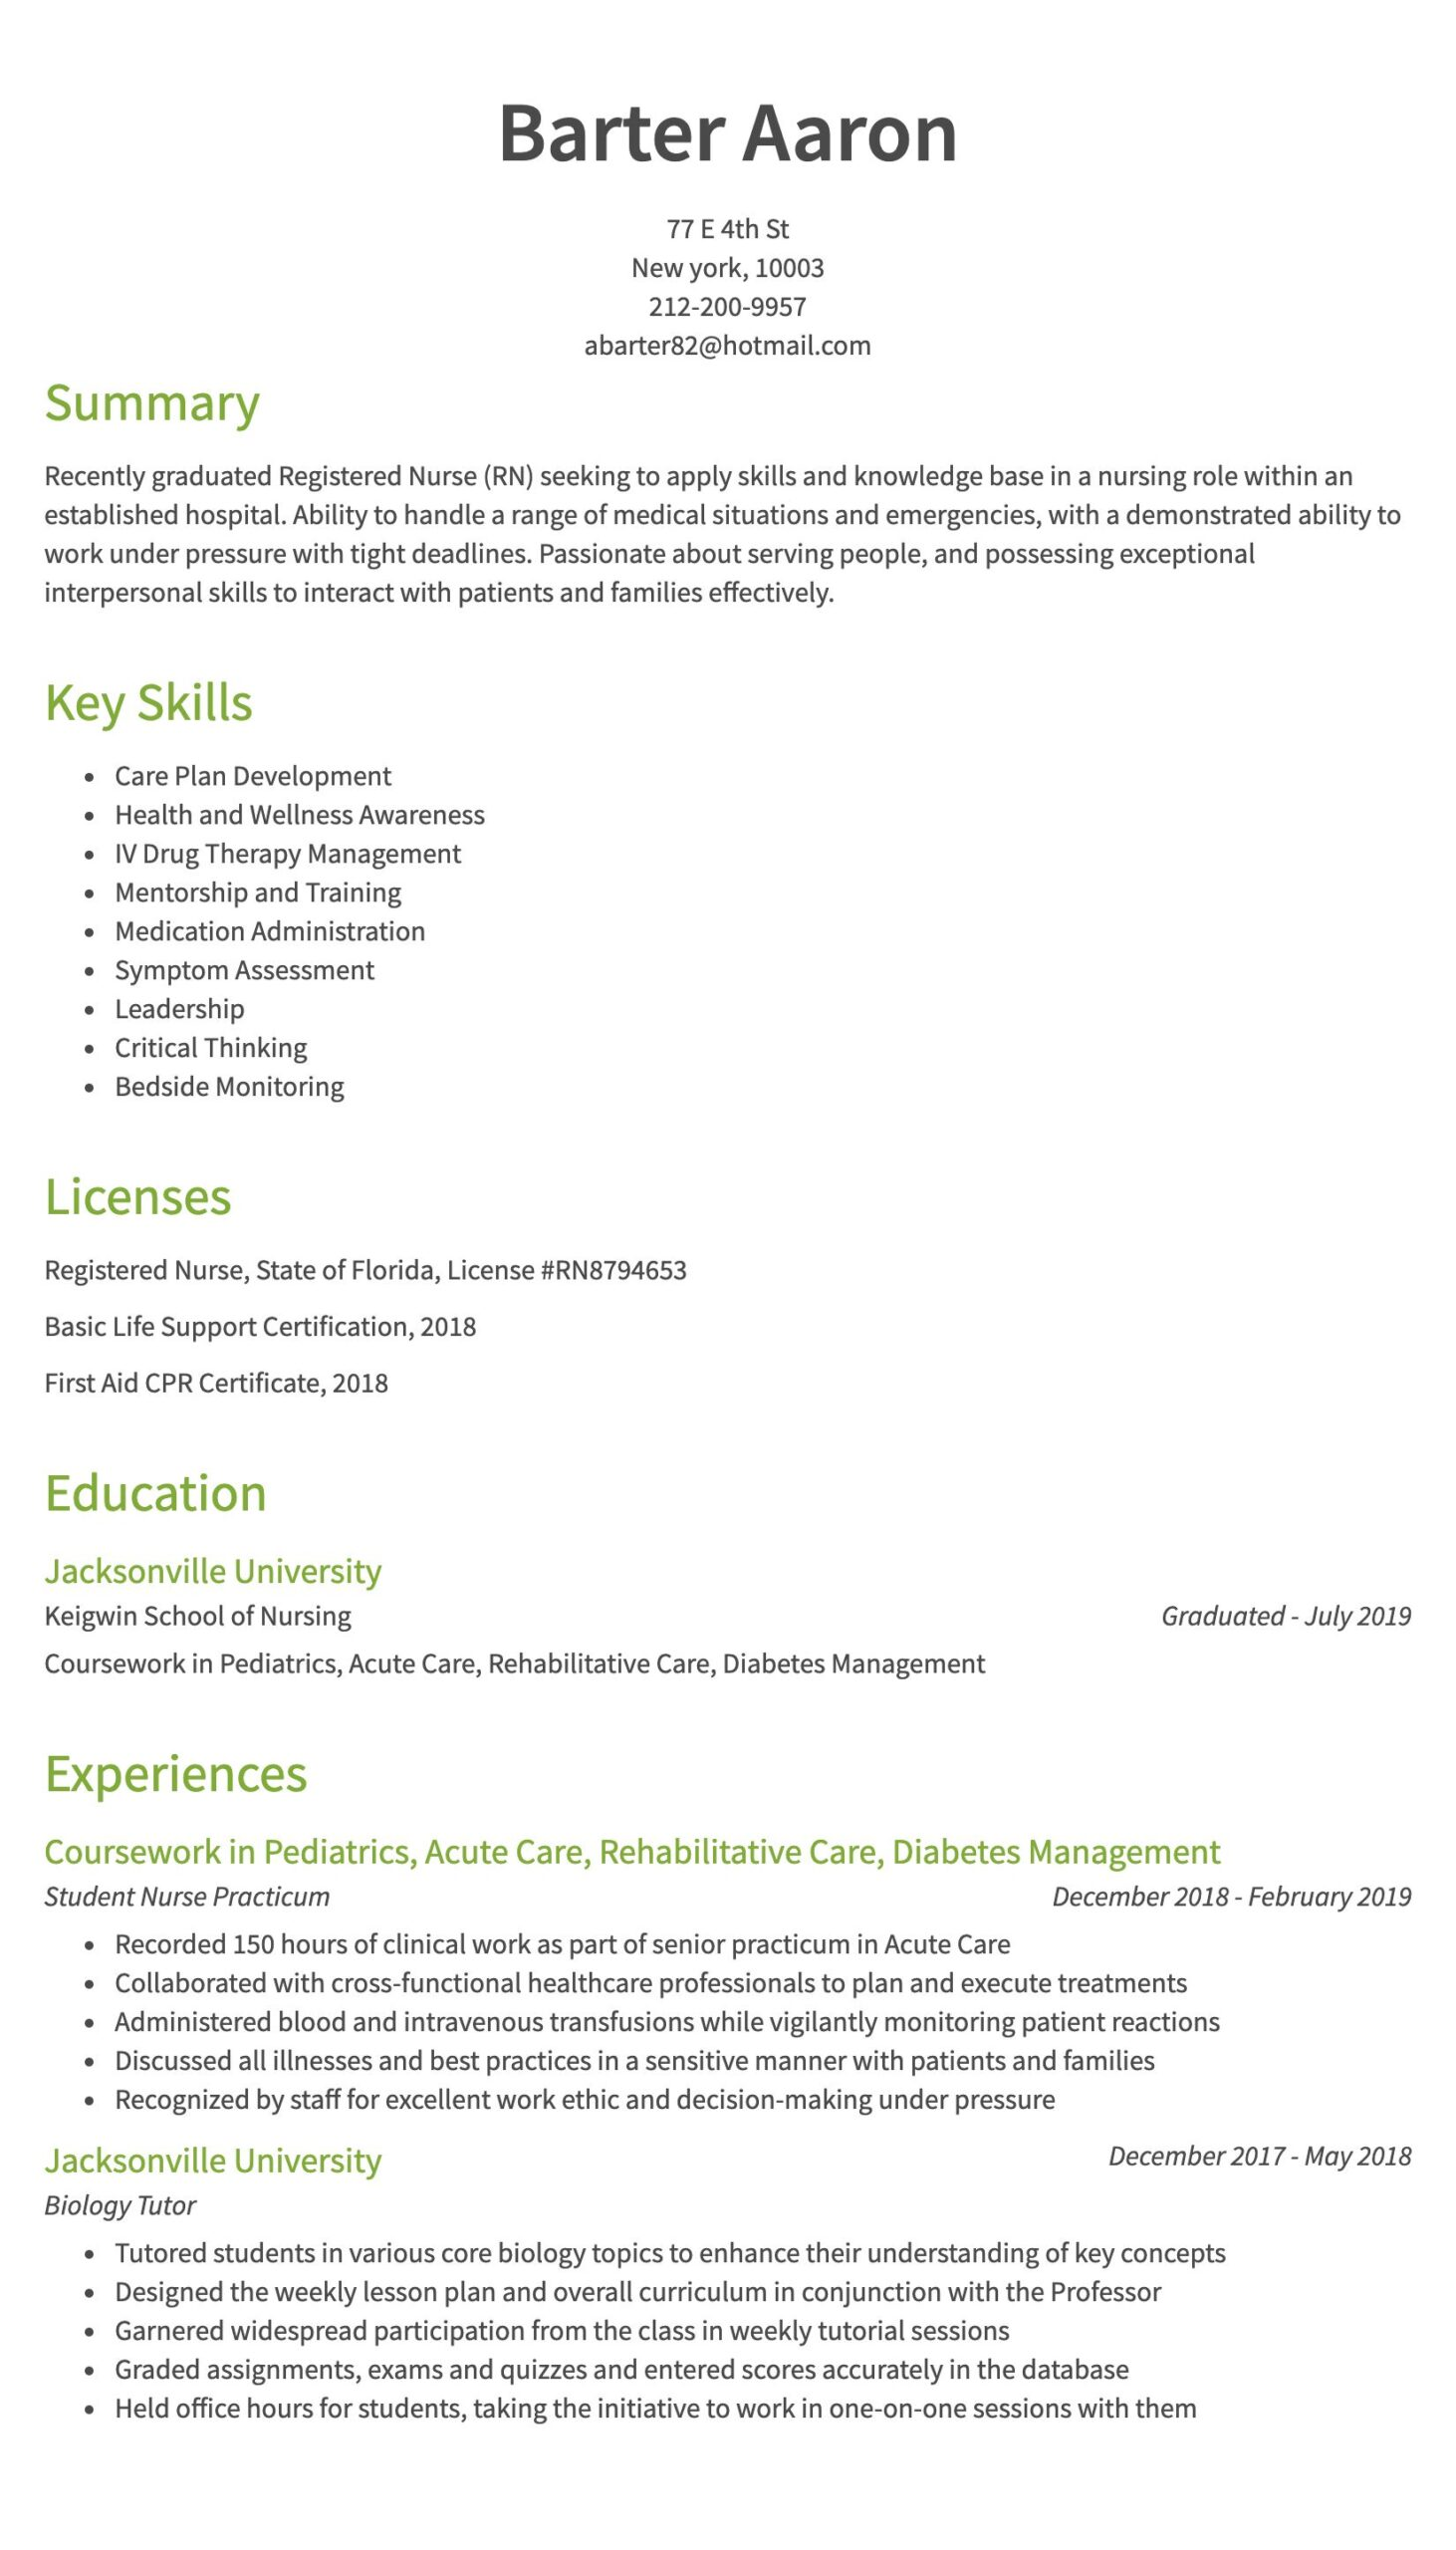 nursing resume examples samples written by rn managers entry level years of exp business Resume Entry Level Rn Resume Examples